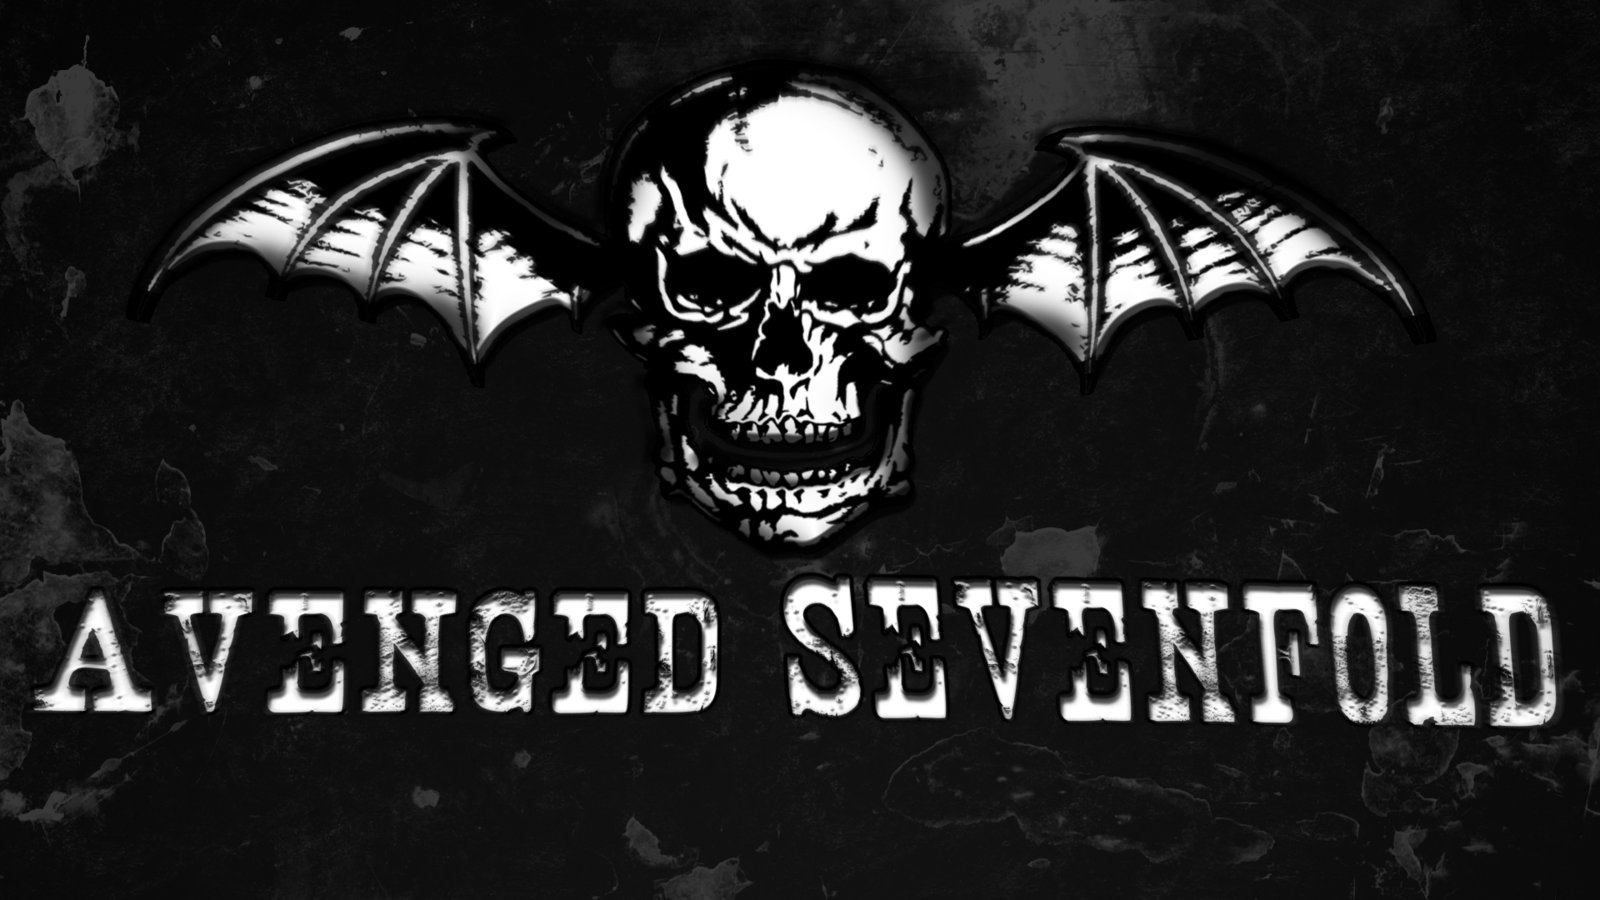 49 Avenged Sevenfold Deathbat Wallpaper On Wallpapersafari